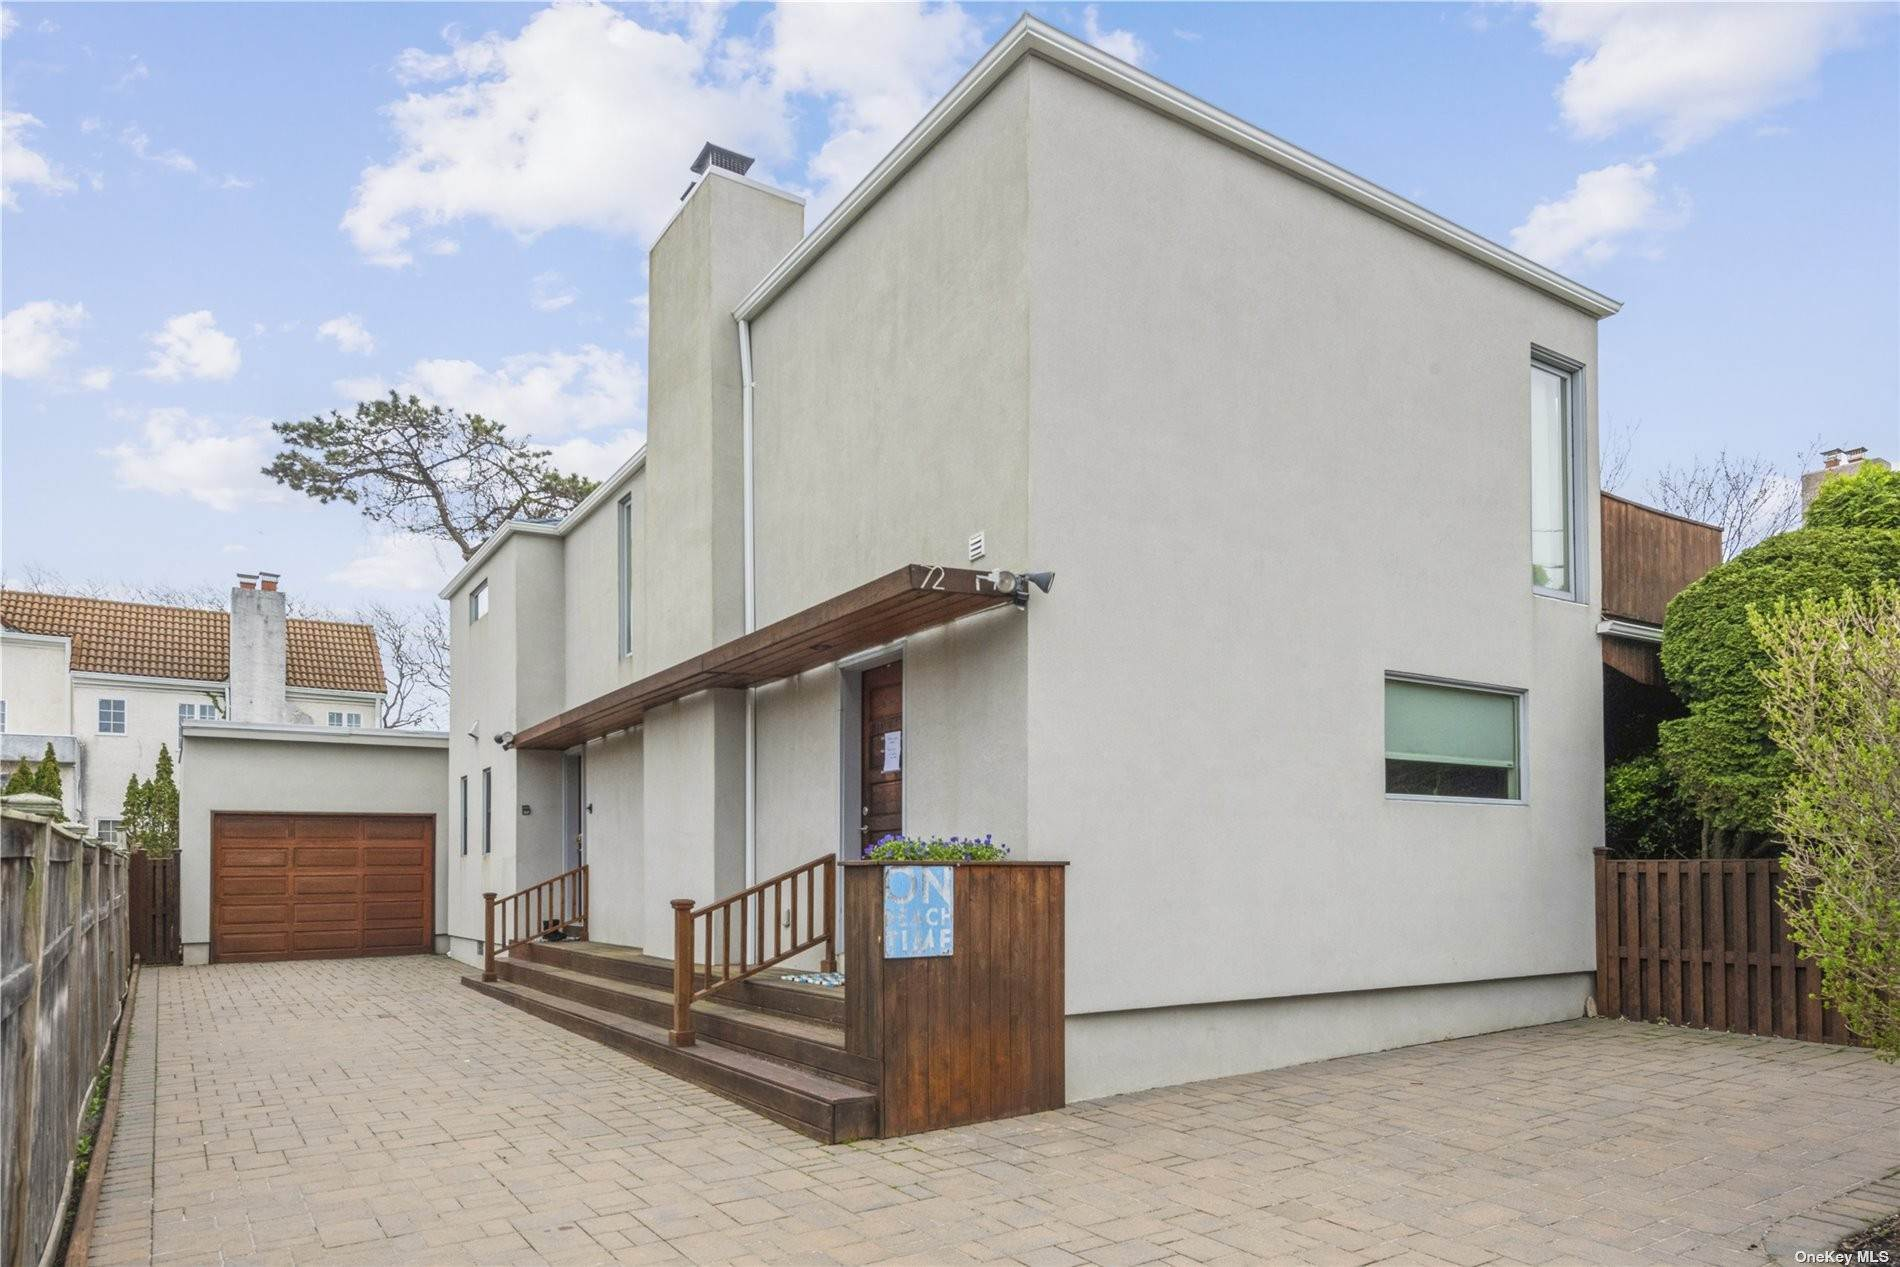 Residential for Sale at 72 Hamilton Avenue Atlantic Beach, New York 11509 United States